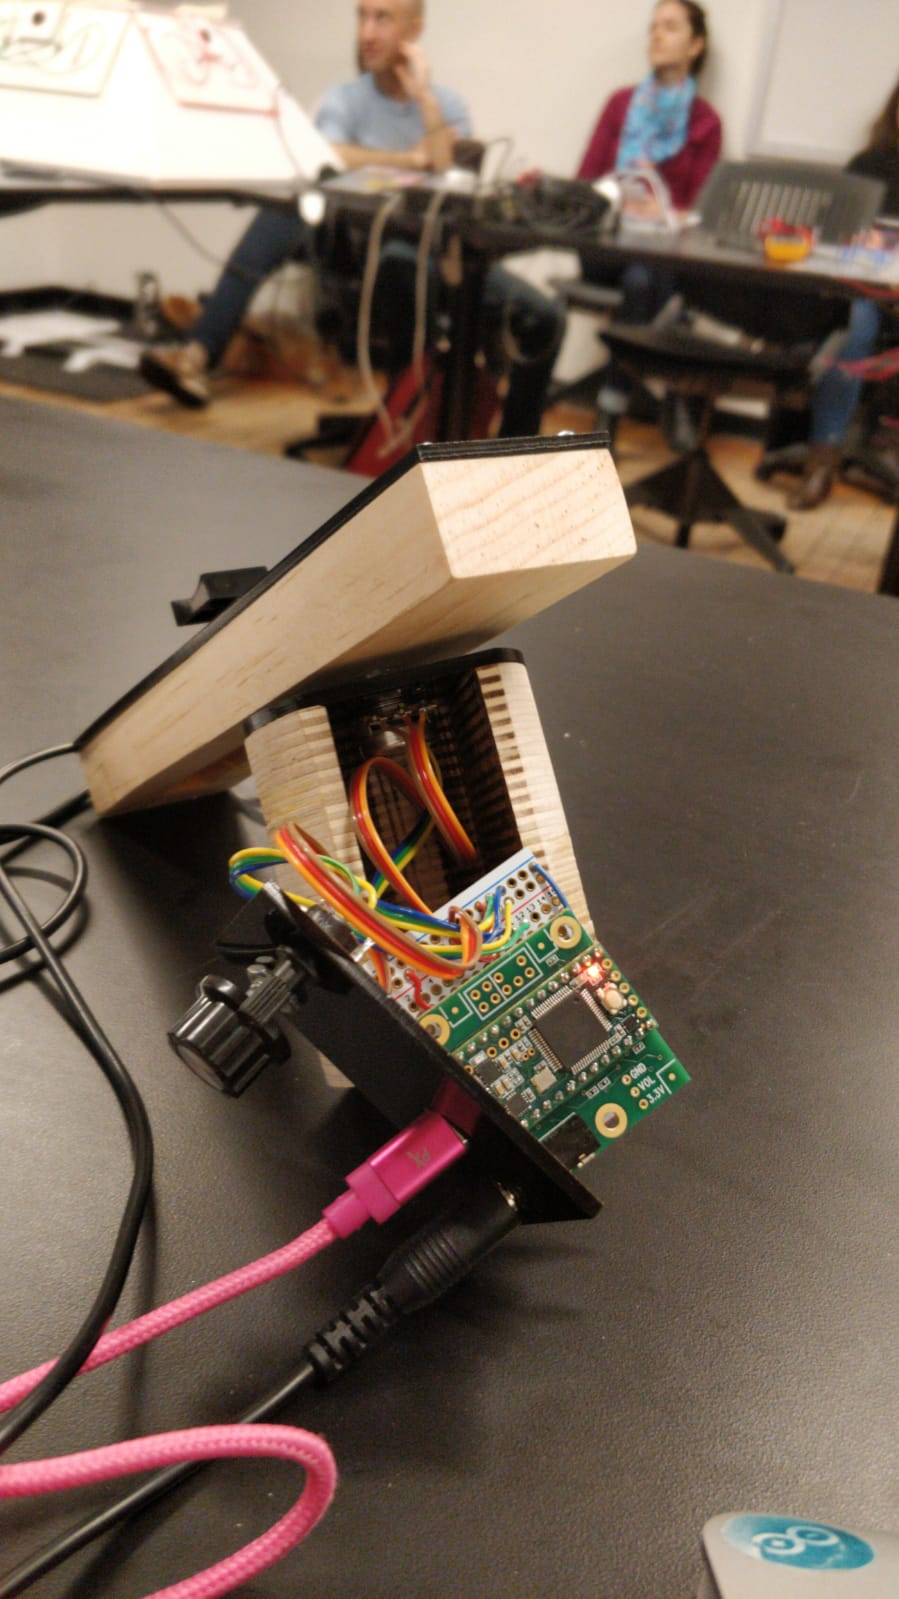 Assembled instrument with the circuit board